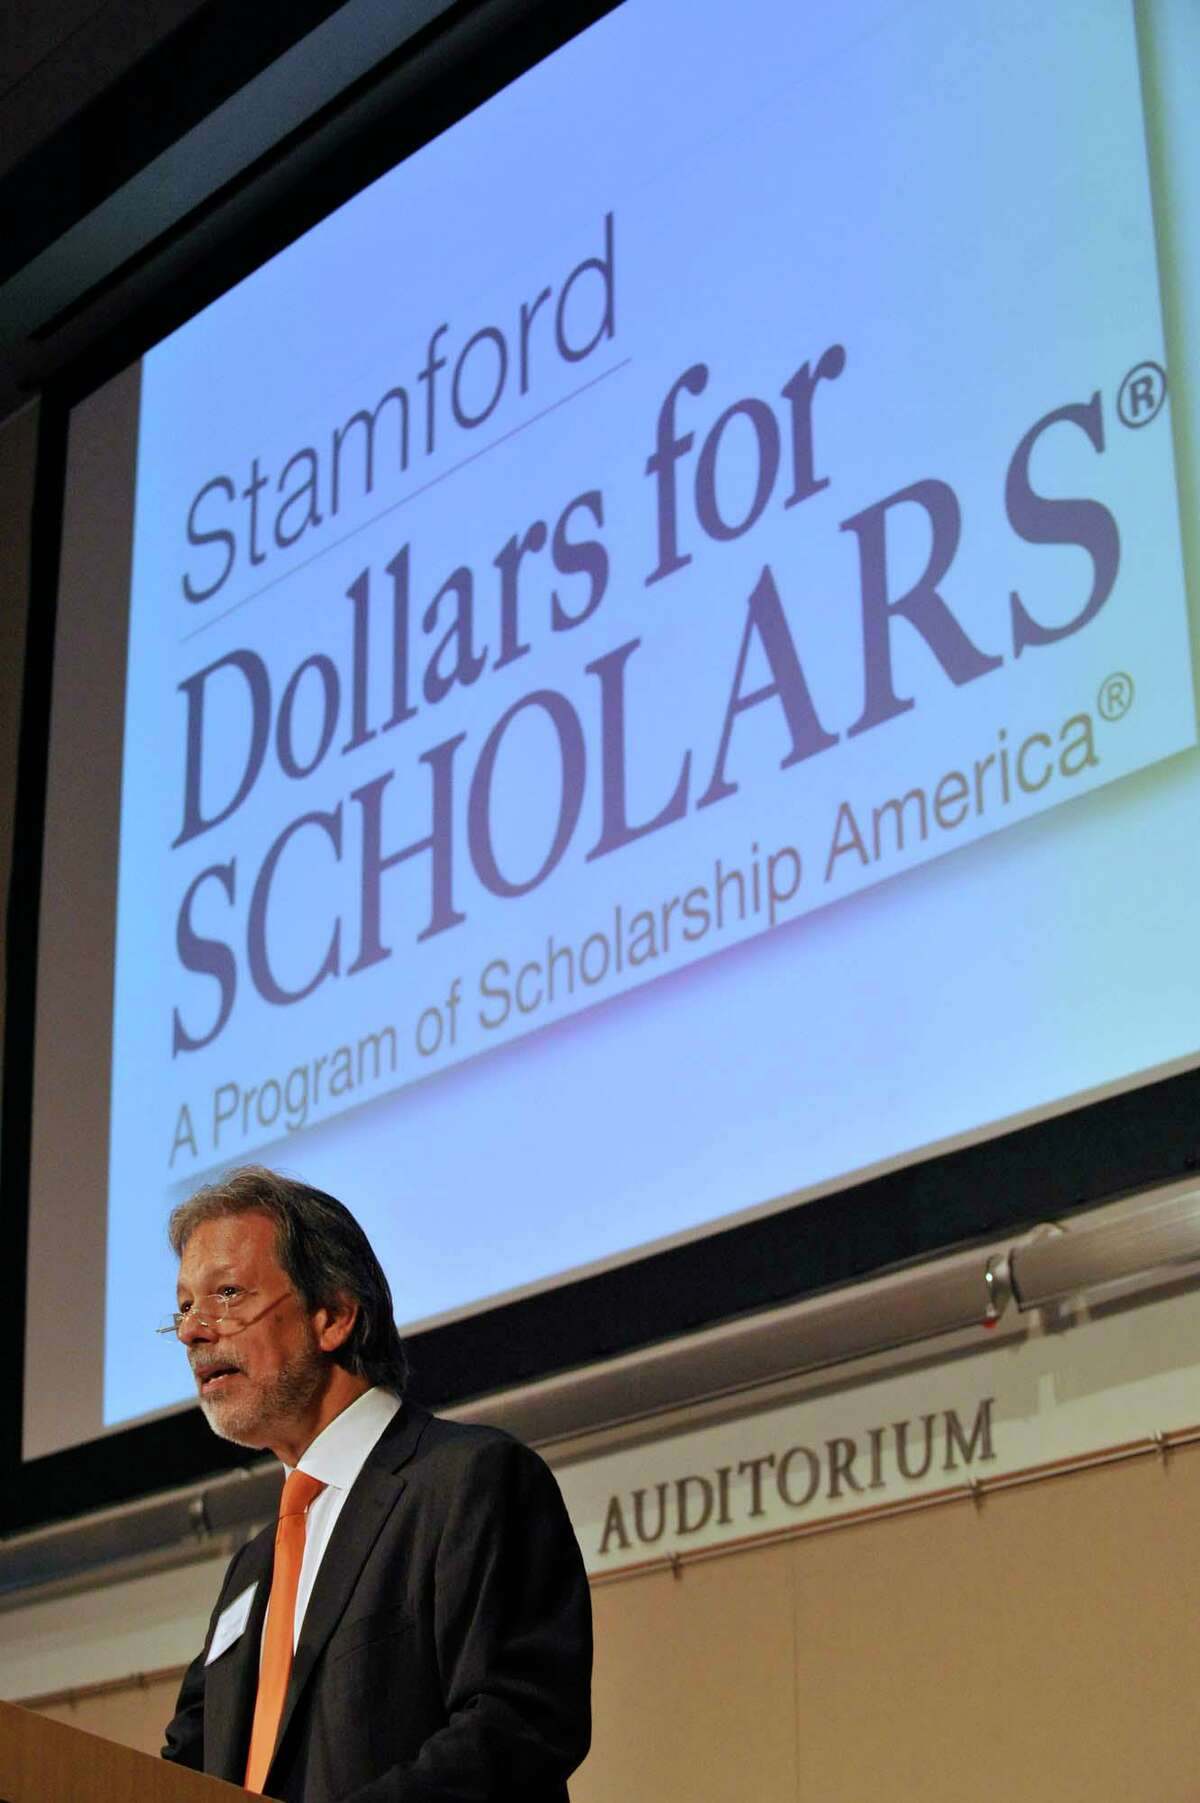 Stamford Dollars for Scholars co-president Tony D'Amelio gives the opening remarks during the organization's scholarship award ceremony at University of Connecticut's Stamford Campus on Monday, June 10, 2013.